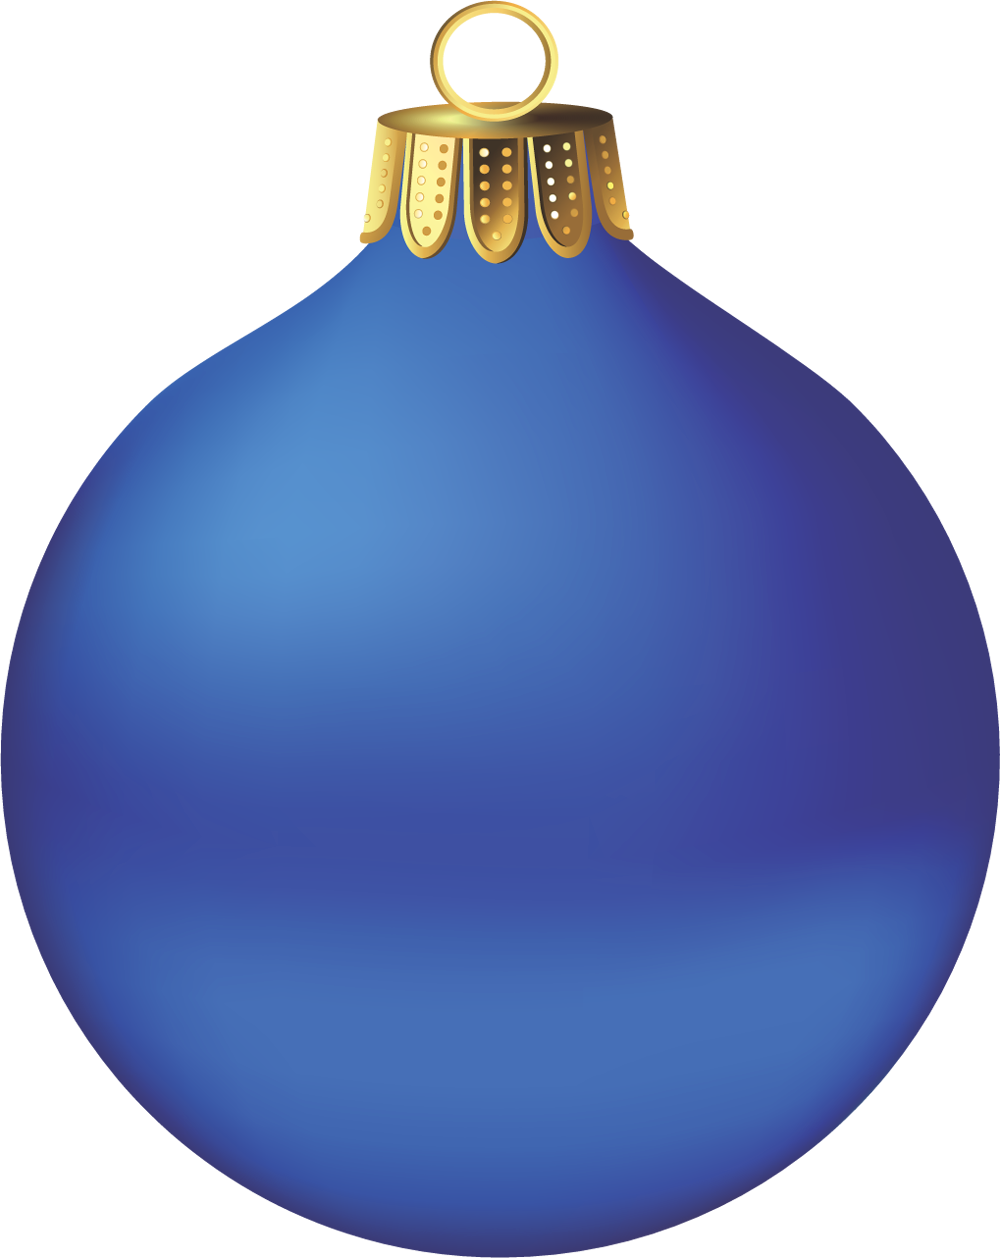 Christmas tree ornament clipart suggest